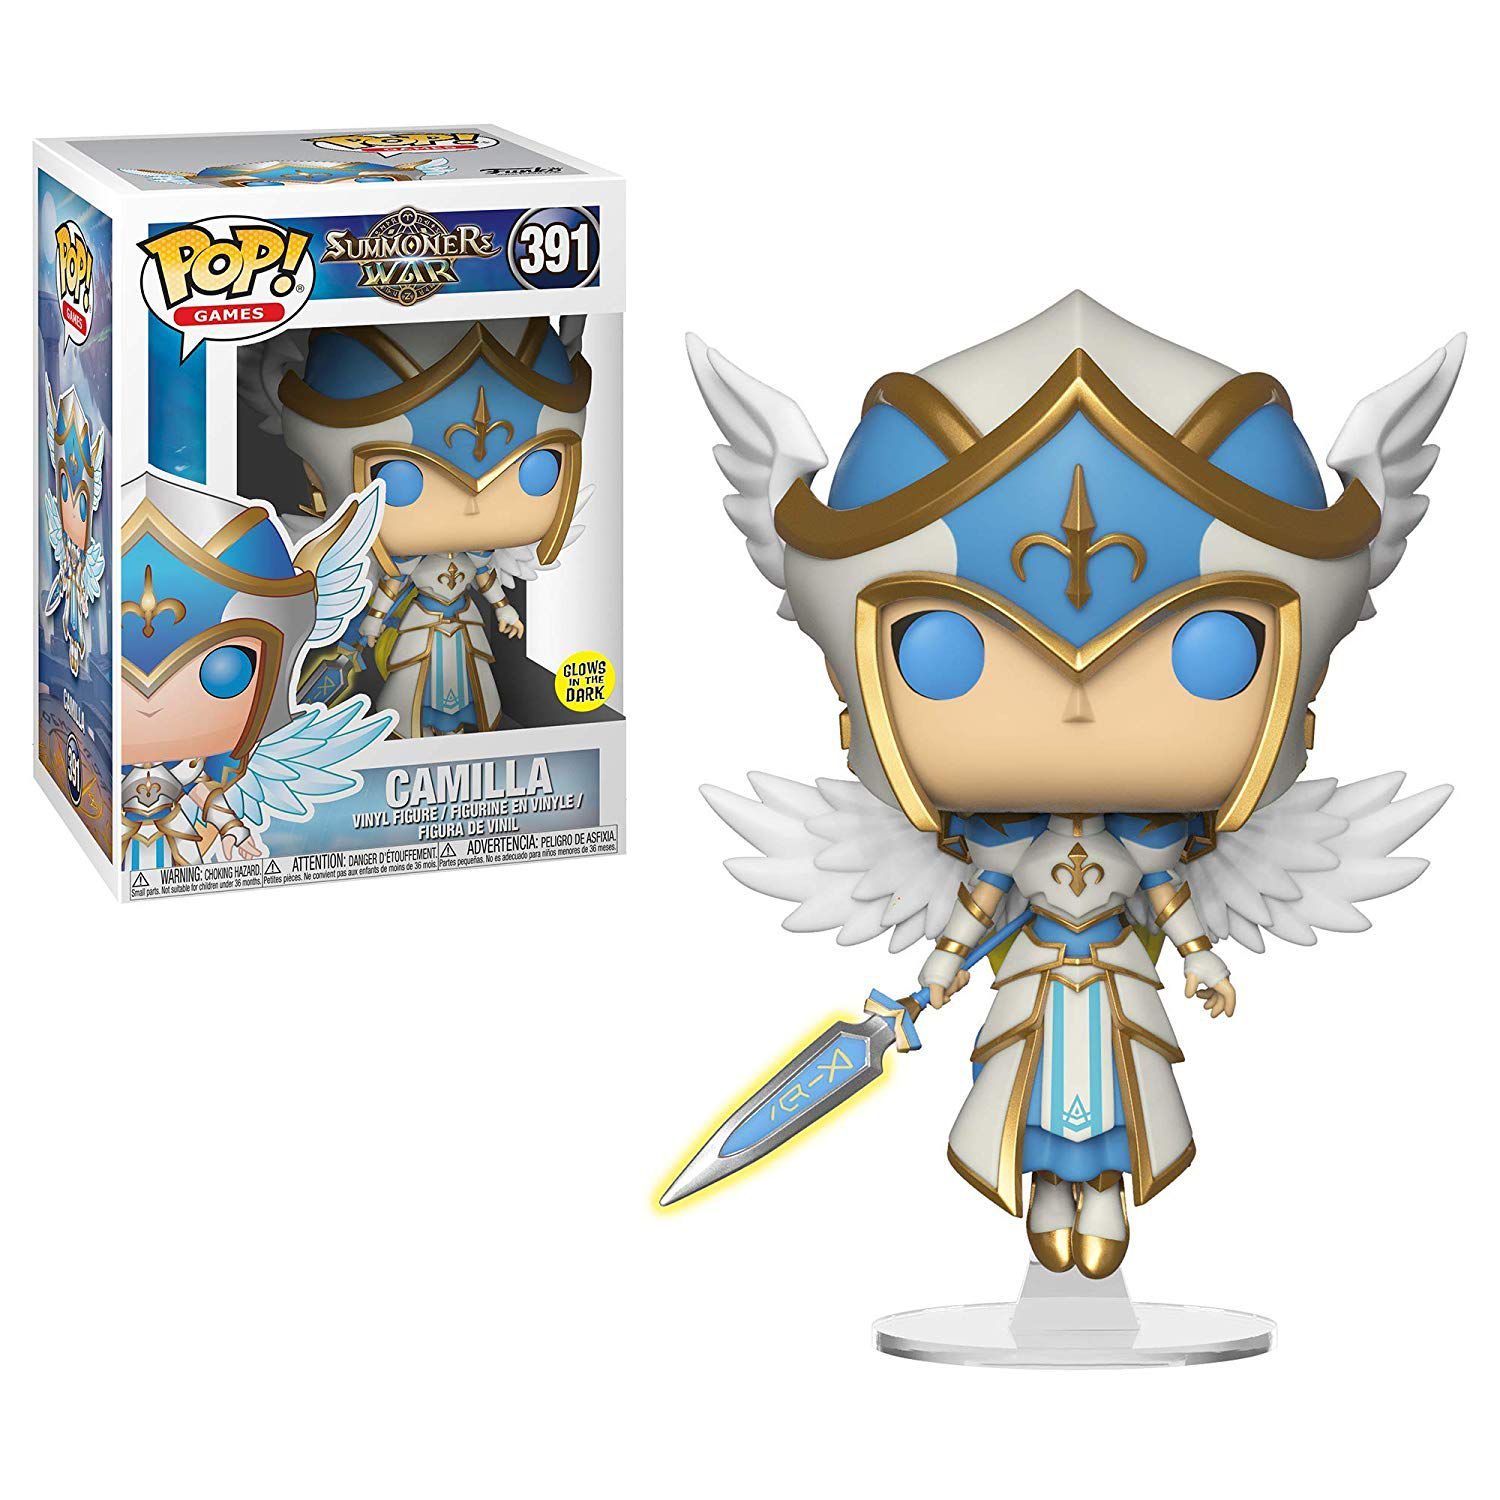 Funko Pop Games Summoners War - Valkyrie